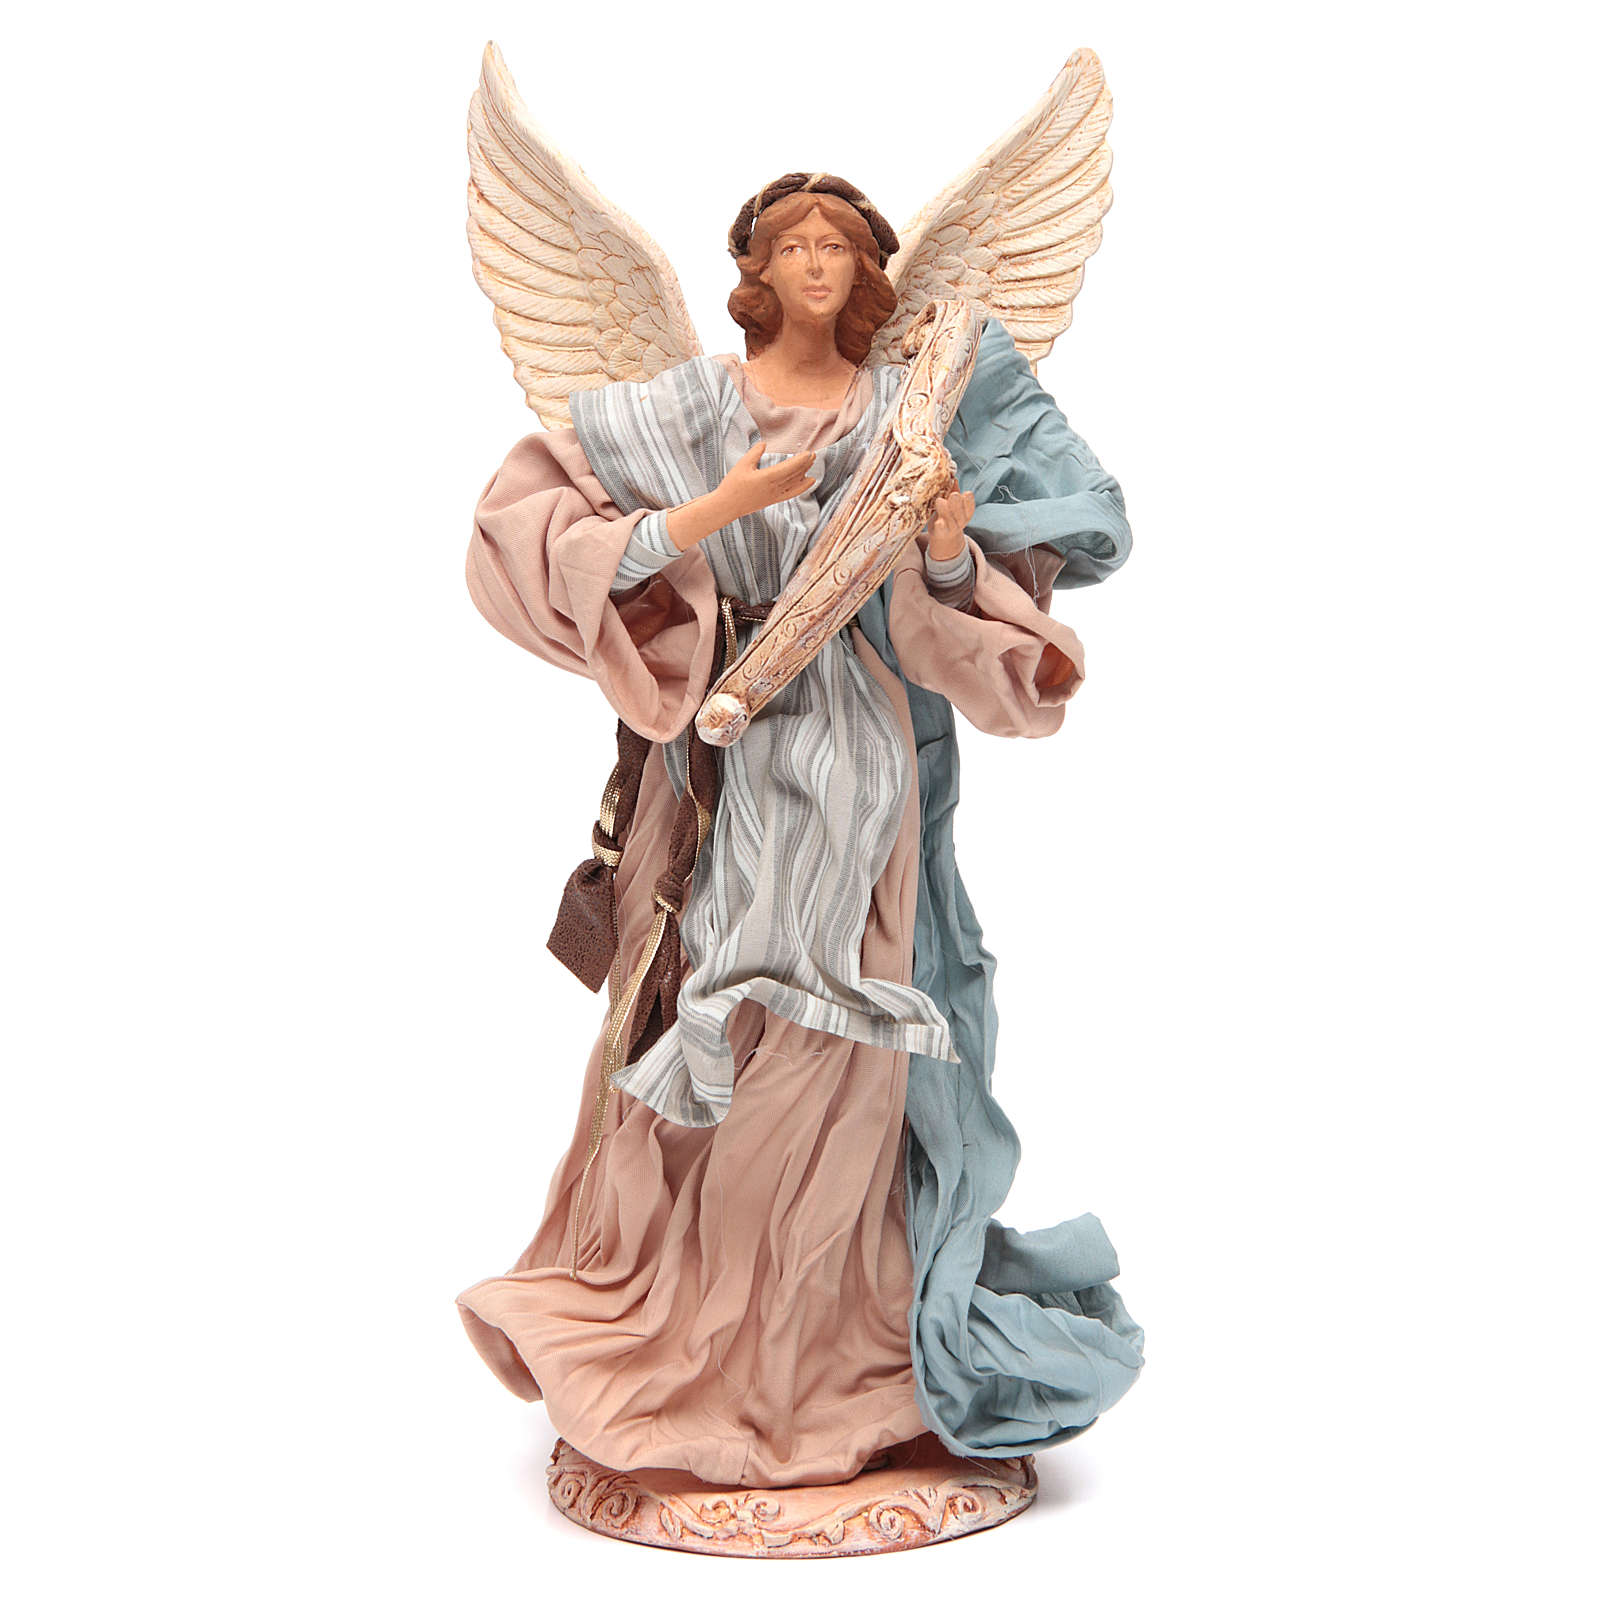 Angel 37 cm in Resin Playing Harp 3